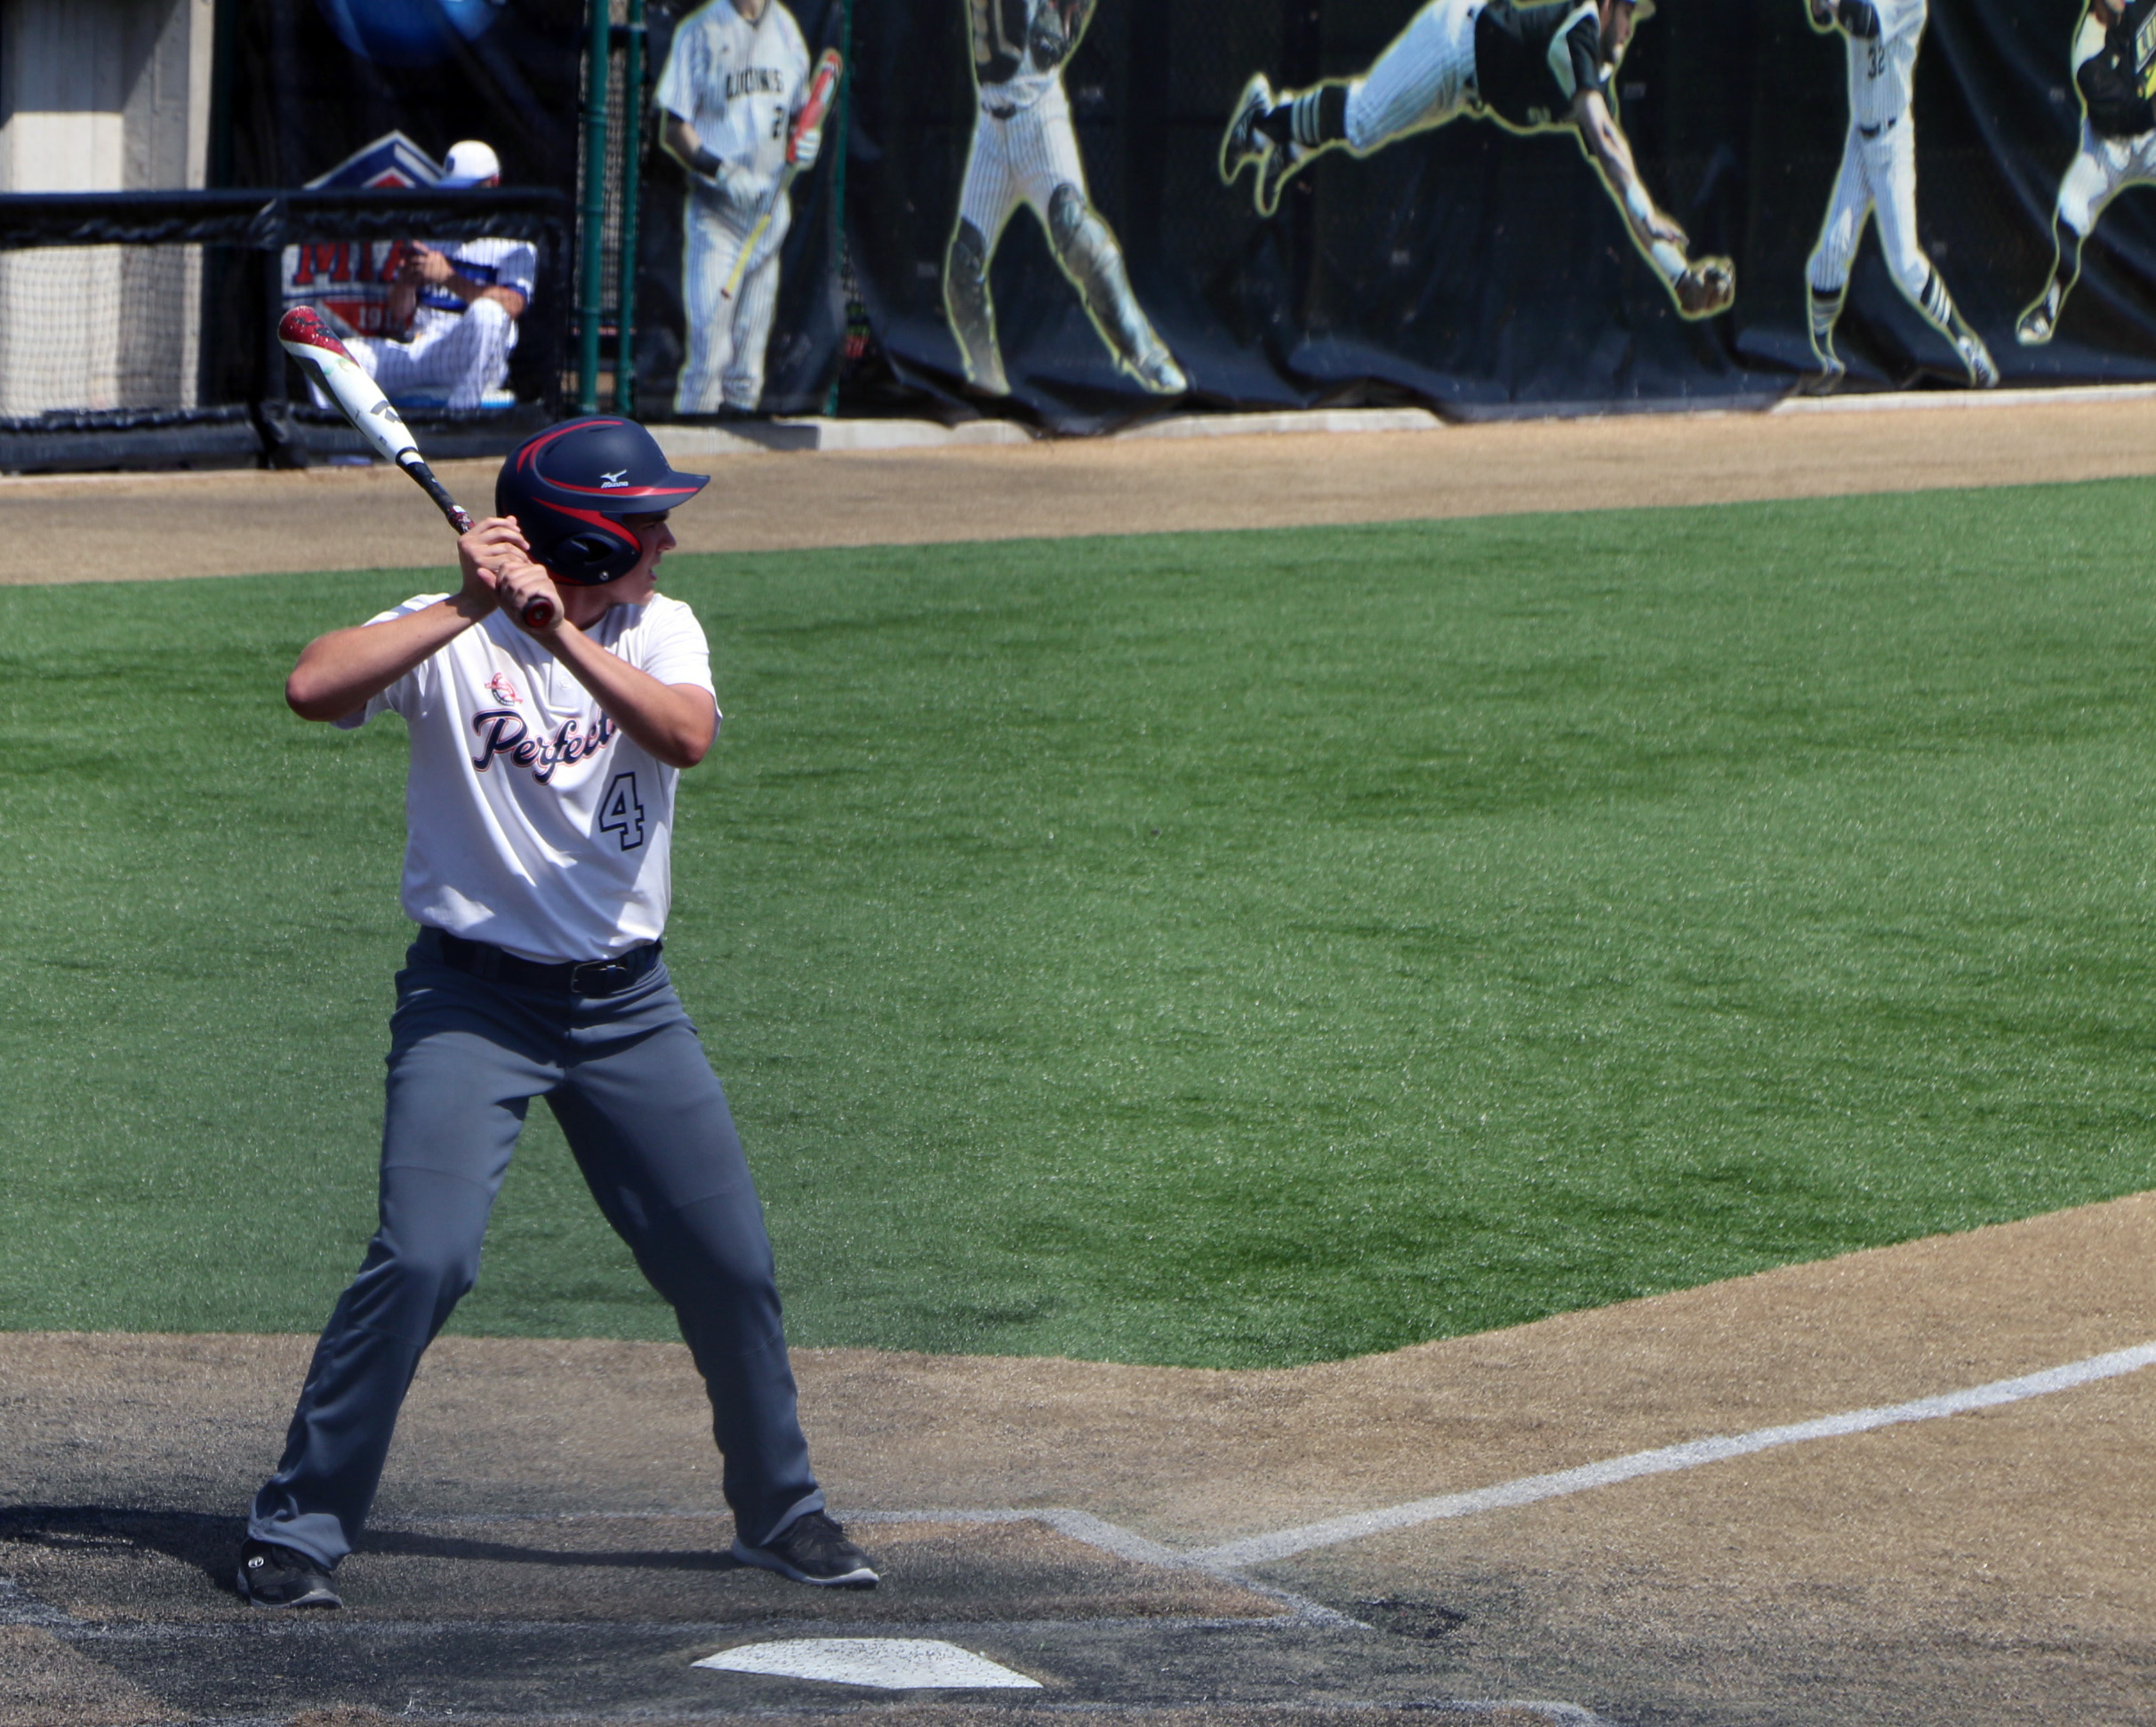 Beal at the plate